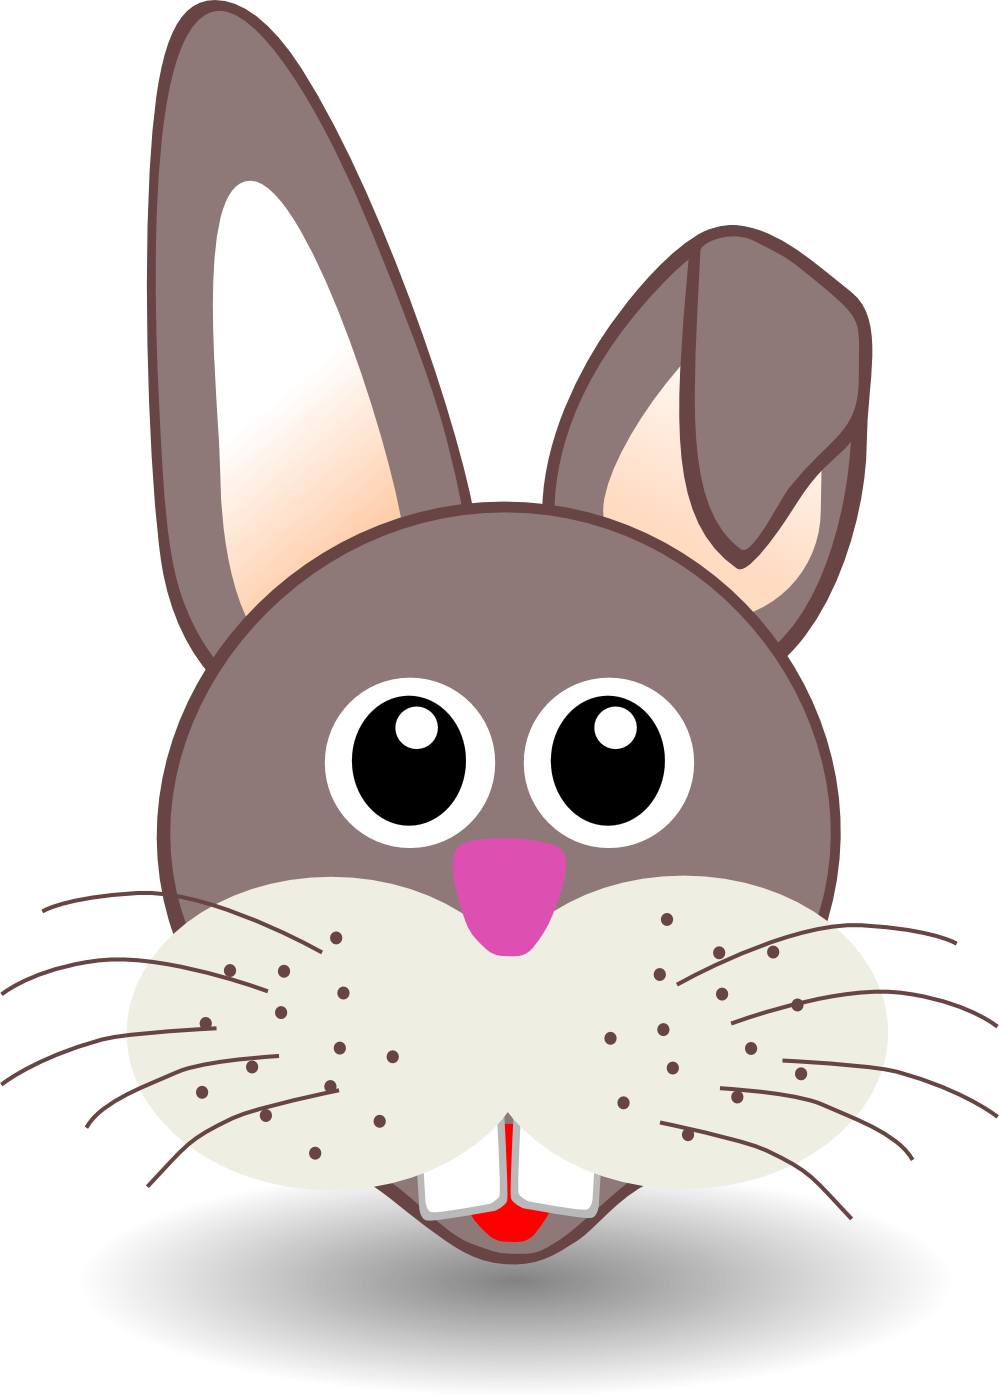 . PlusPng.com Rabbit Face Cartoon Sheet Page 999px.png 145(K) - PNG Rabbit Face